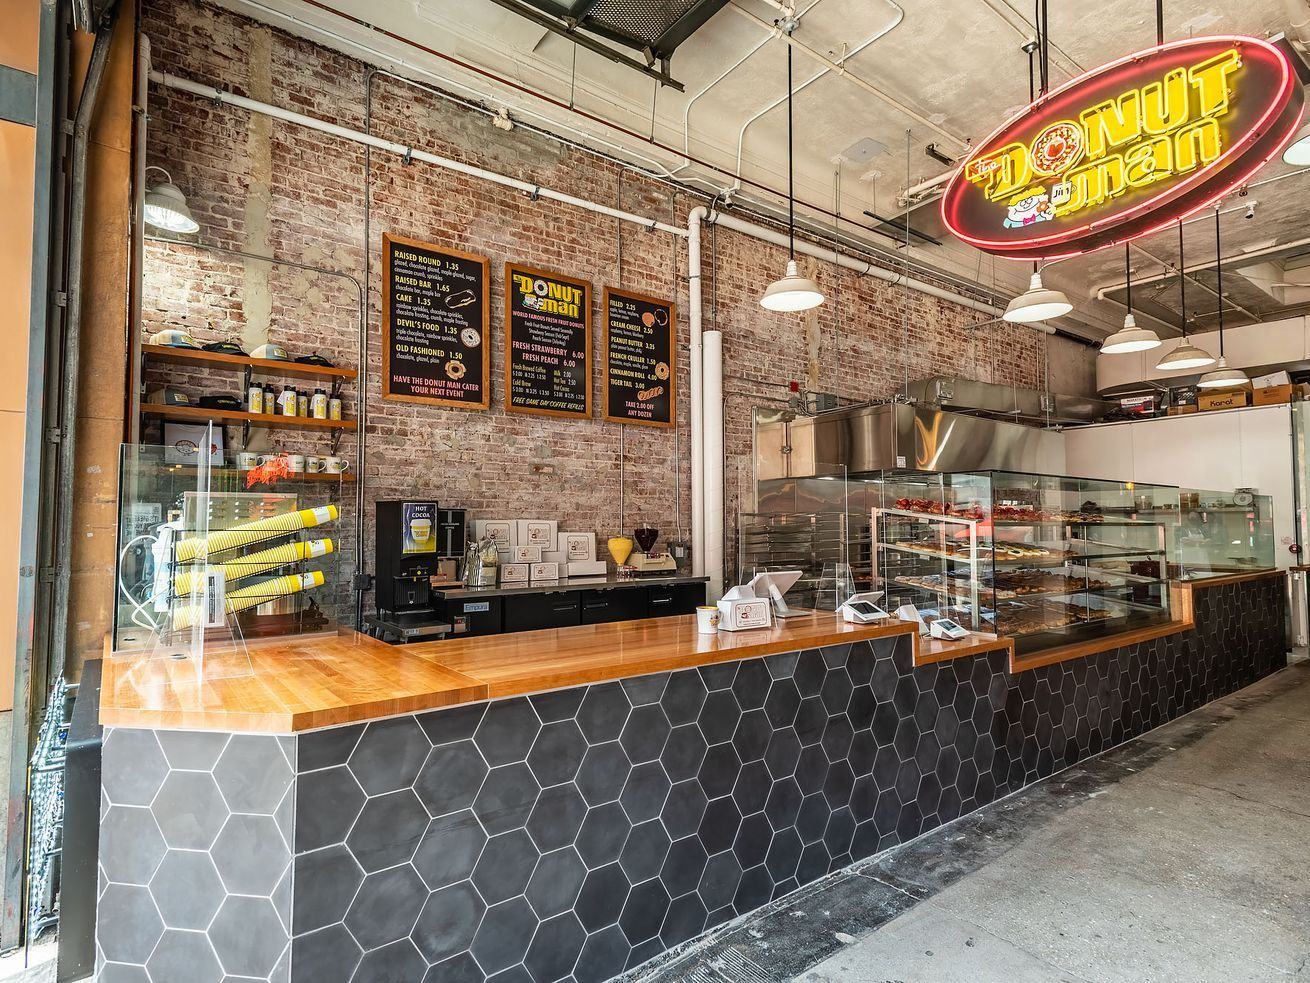 Grand Central Market S New Service Delivers Dishes From Every Stall In The Food Hall In 2020 Food Hall China Cafe Central Market